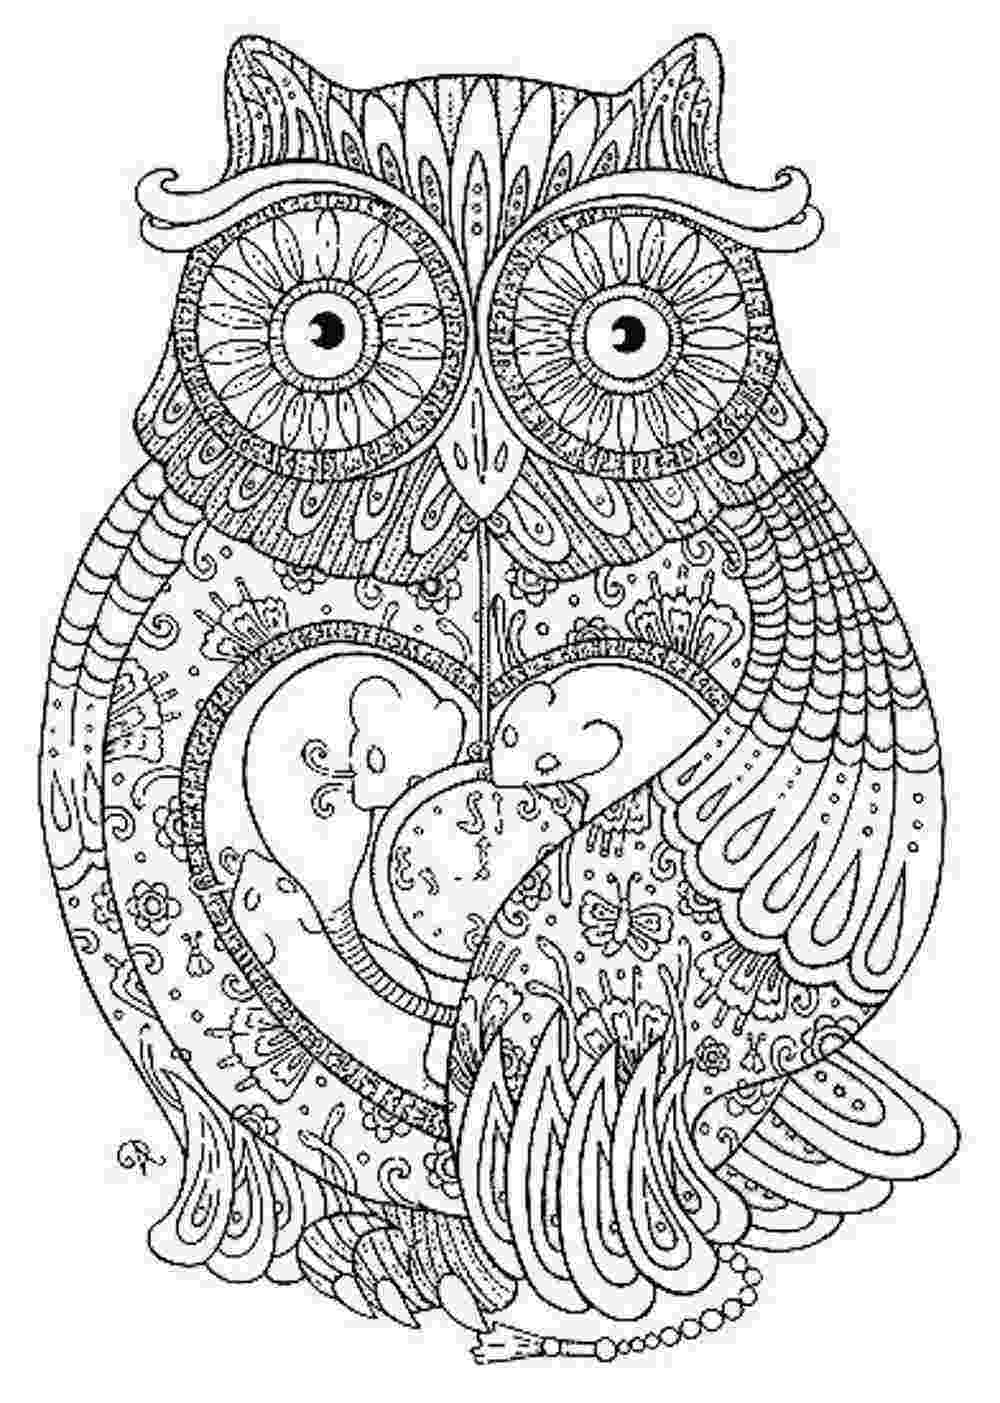 animal coloring book for adults grown up coloring pages to download and print for free adults coloring for animal book